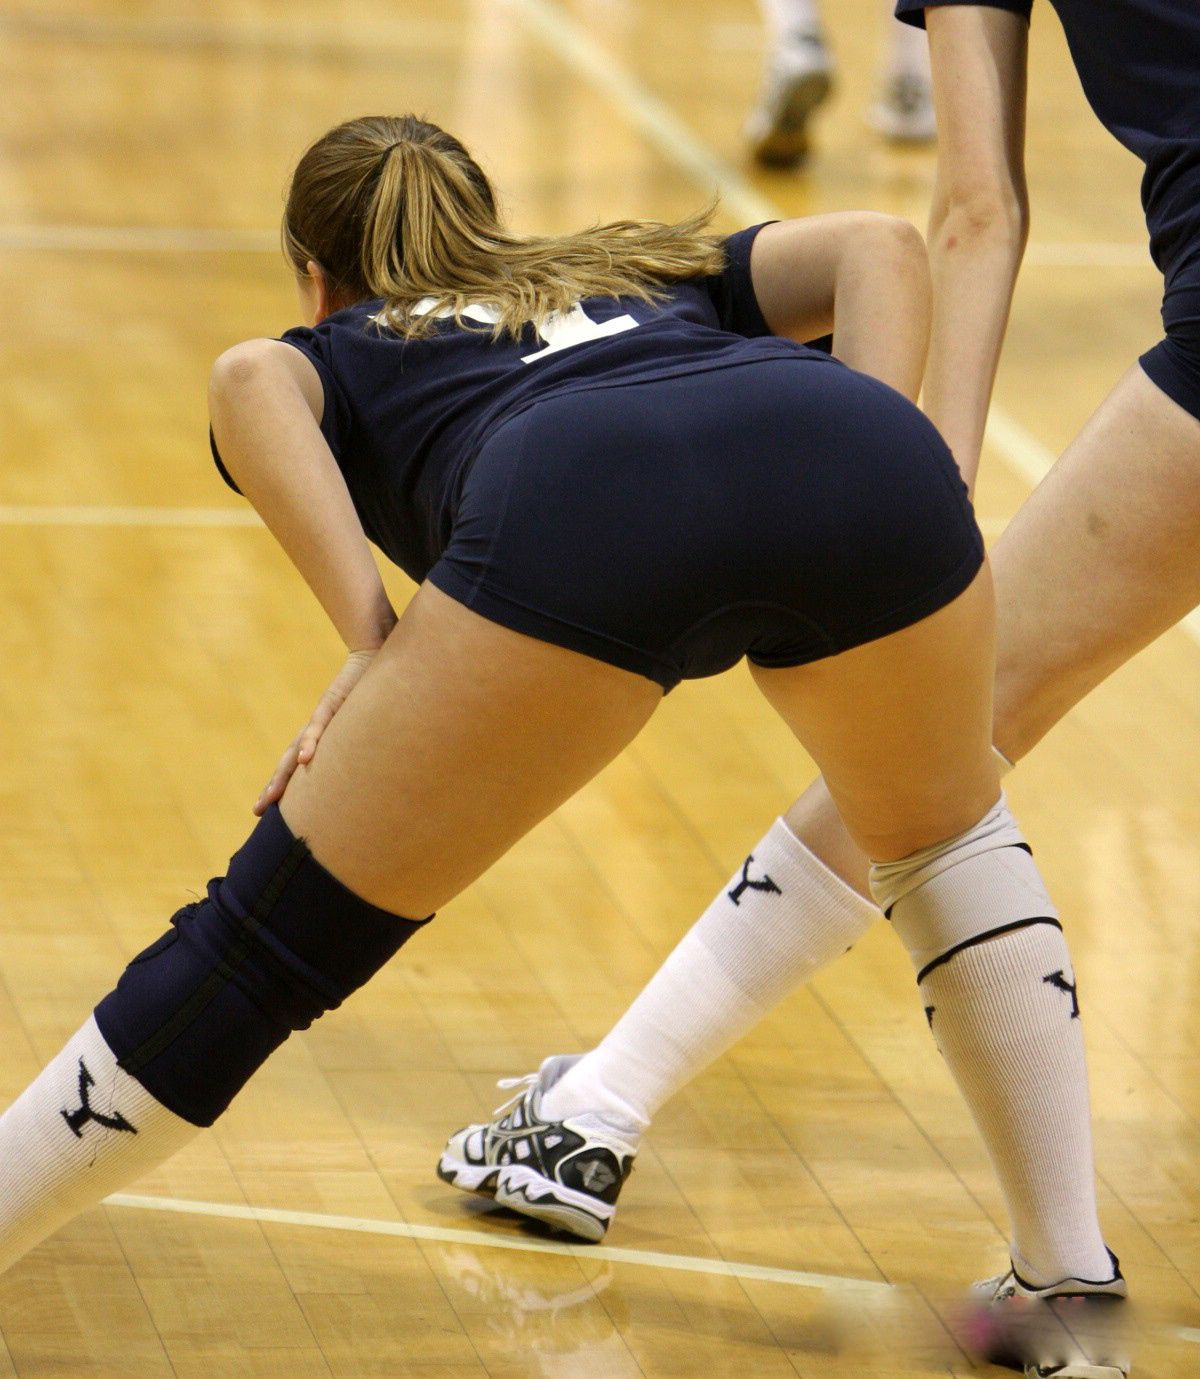 Volleyball girl warming upWomen In Volleyball Shorts